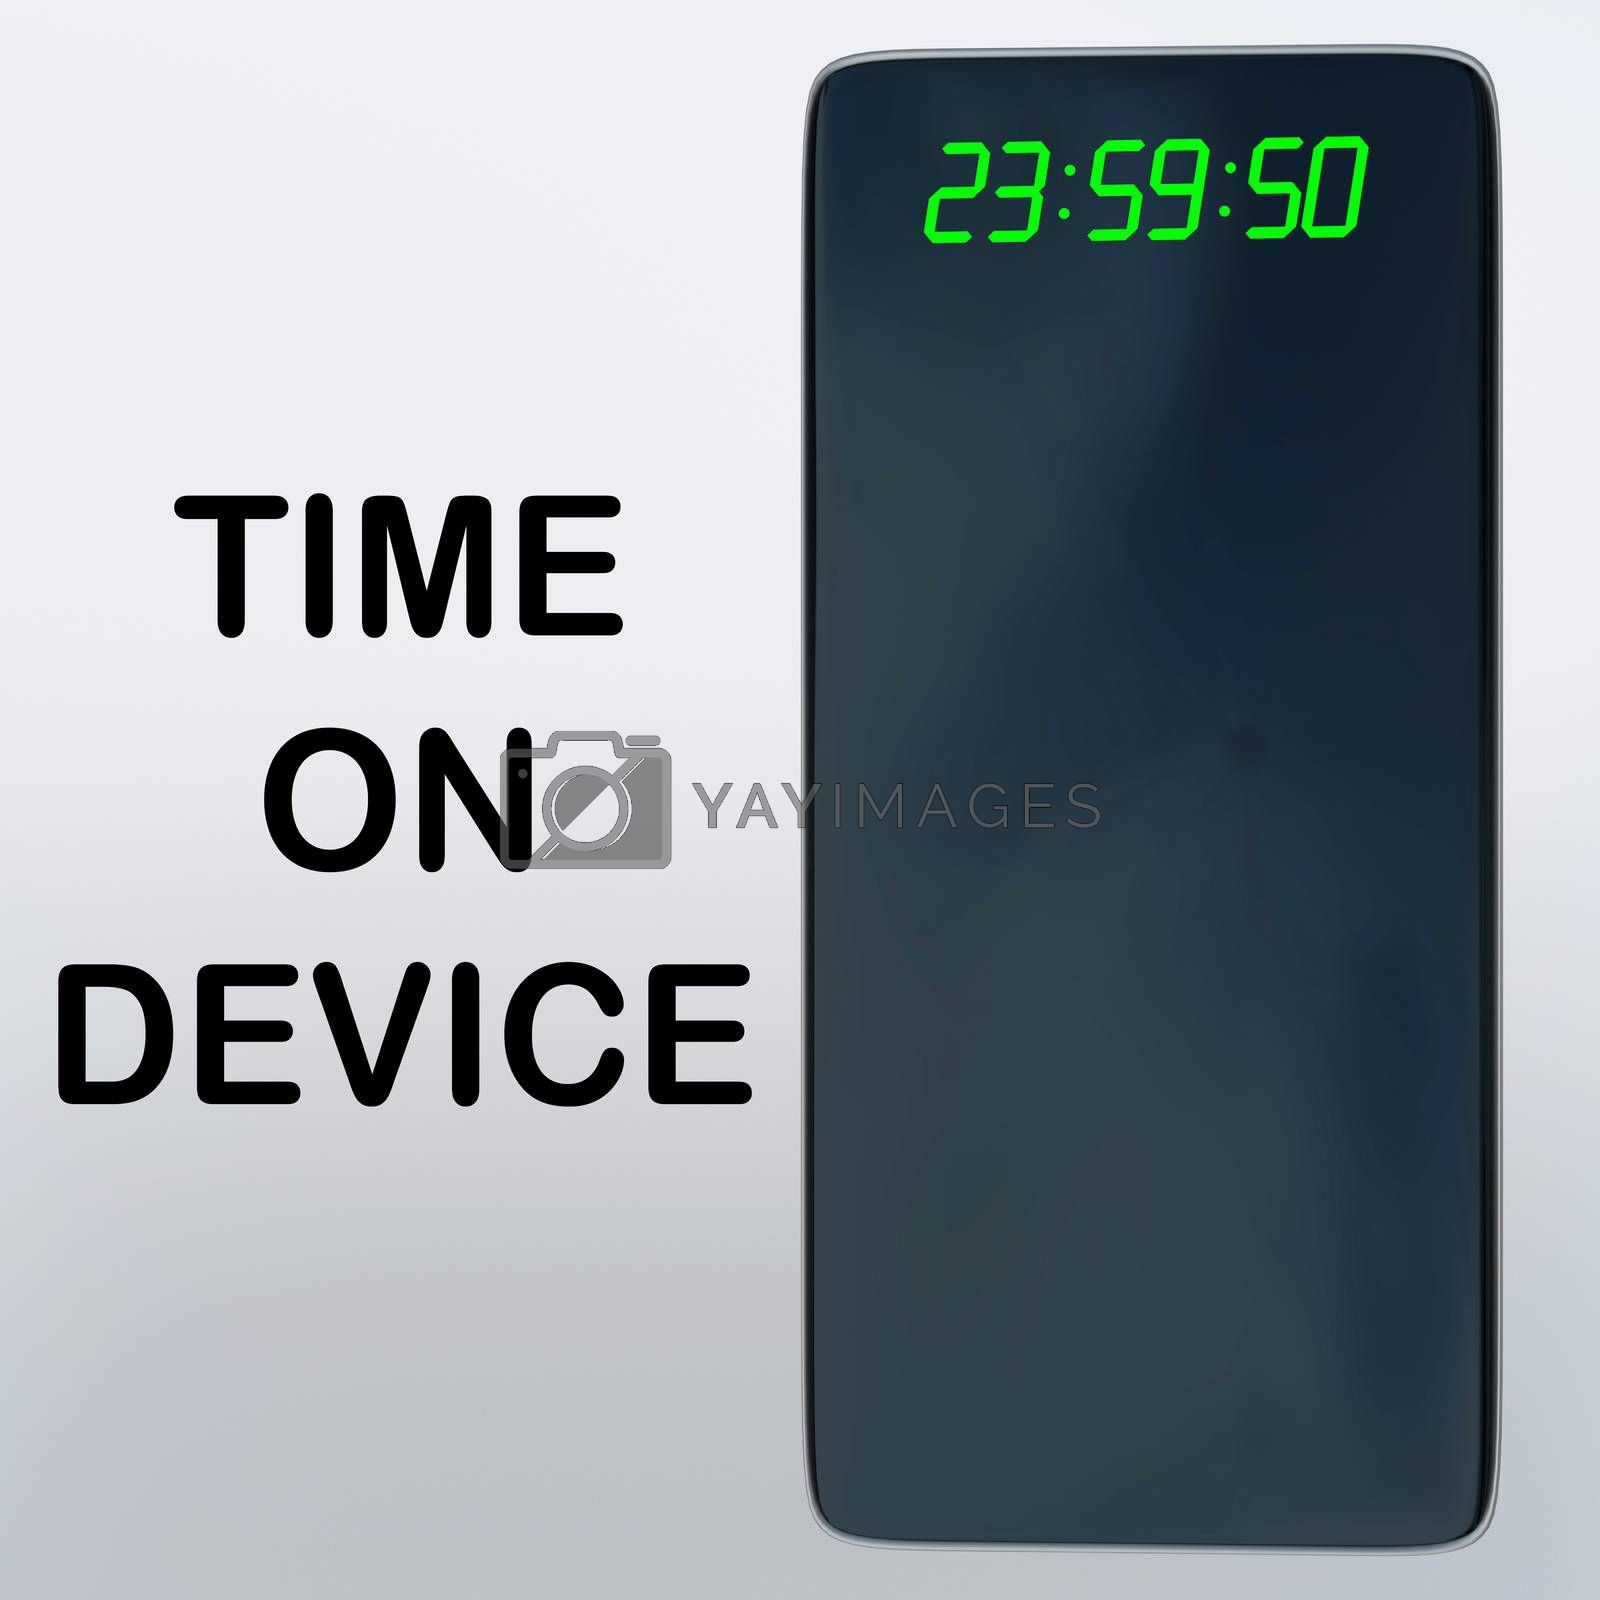 3D illustration of TIME ON DEVICE title beside a smartphone with time display, isolated over gray gradient.